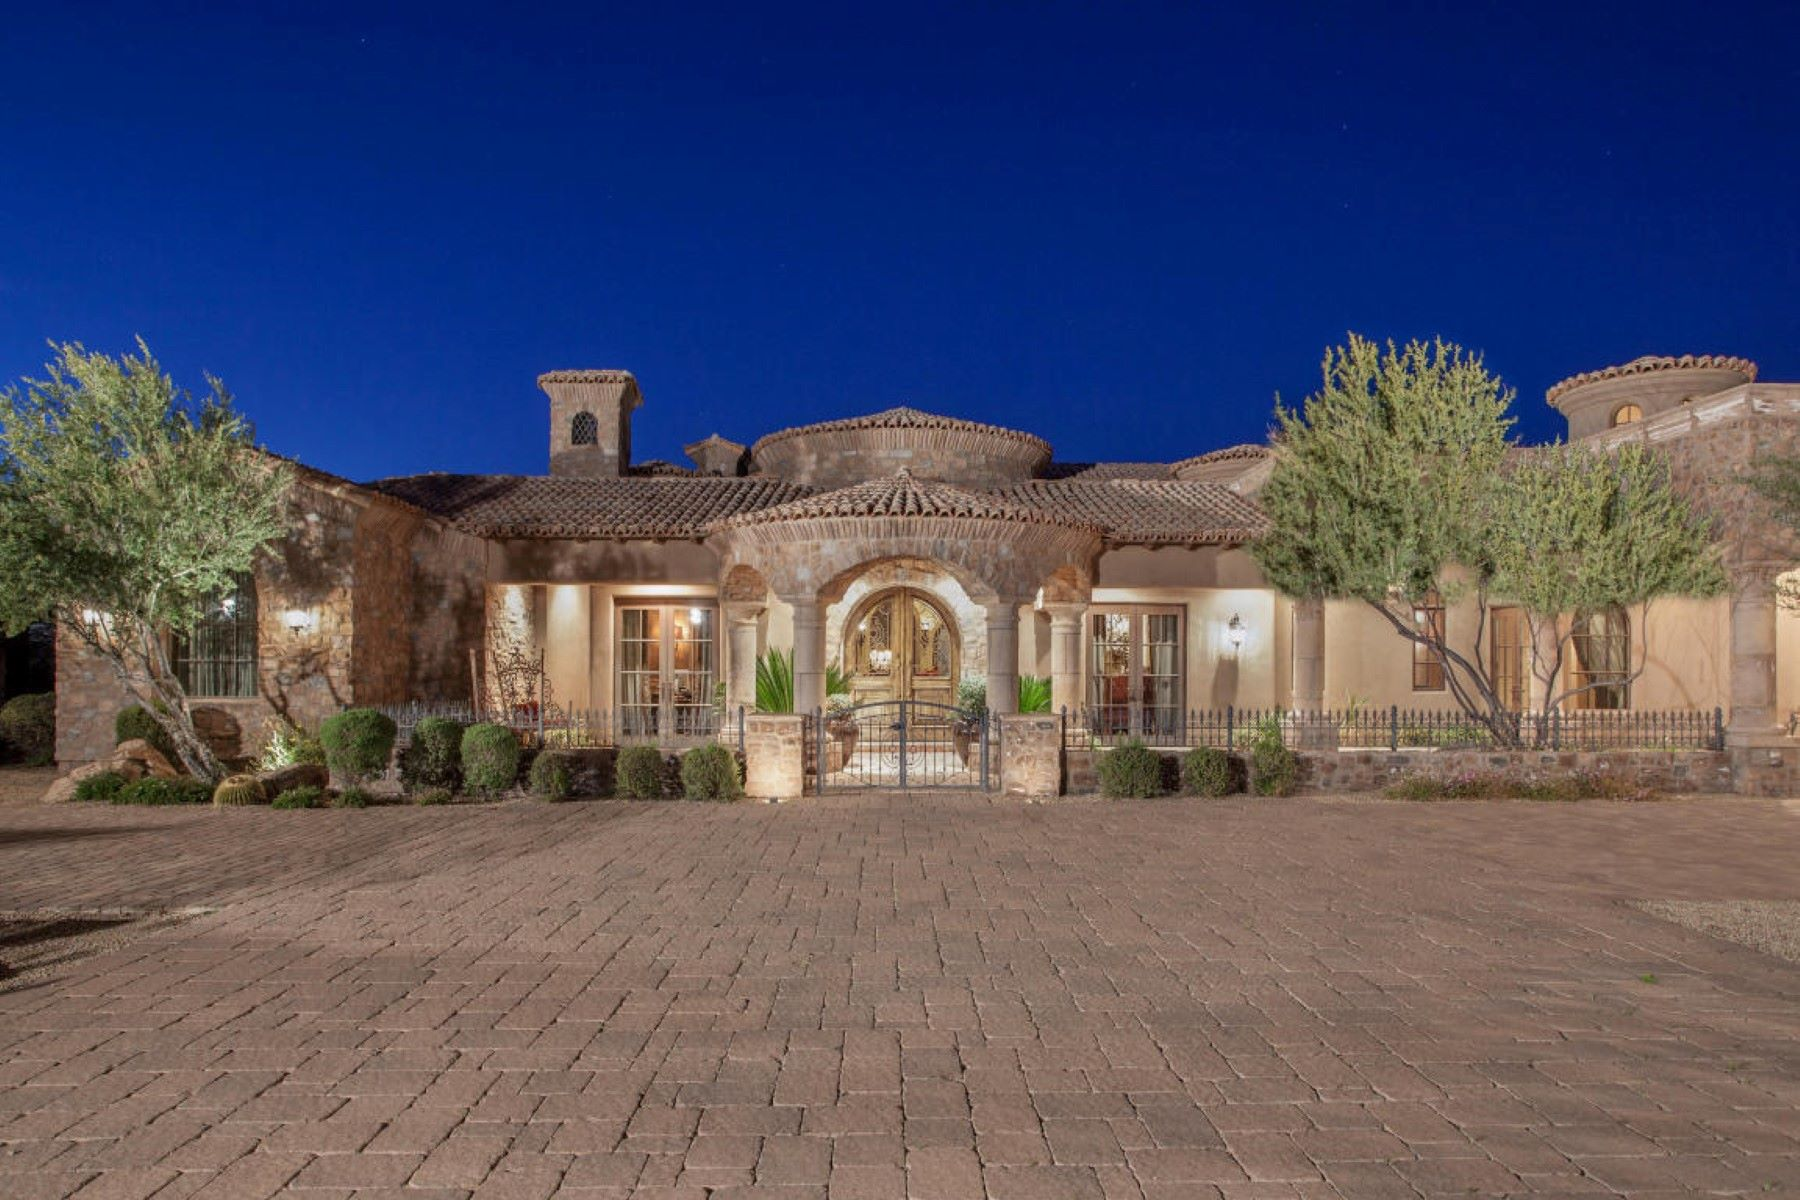 Moradia para Venda às Incredible sprawling estate situated on acres of beautiful Sonoran Desert 8143 E Stagecoach Pass, Scottsdale, Arizona, 85266 Estados Unidos